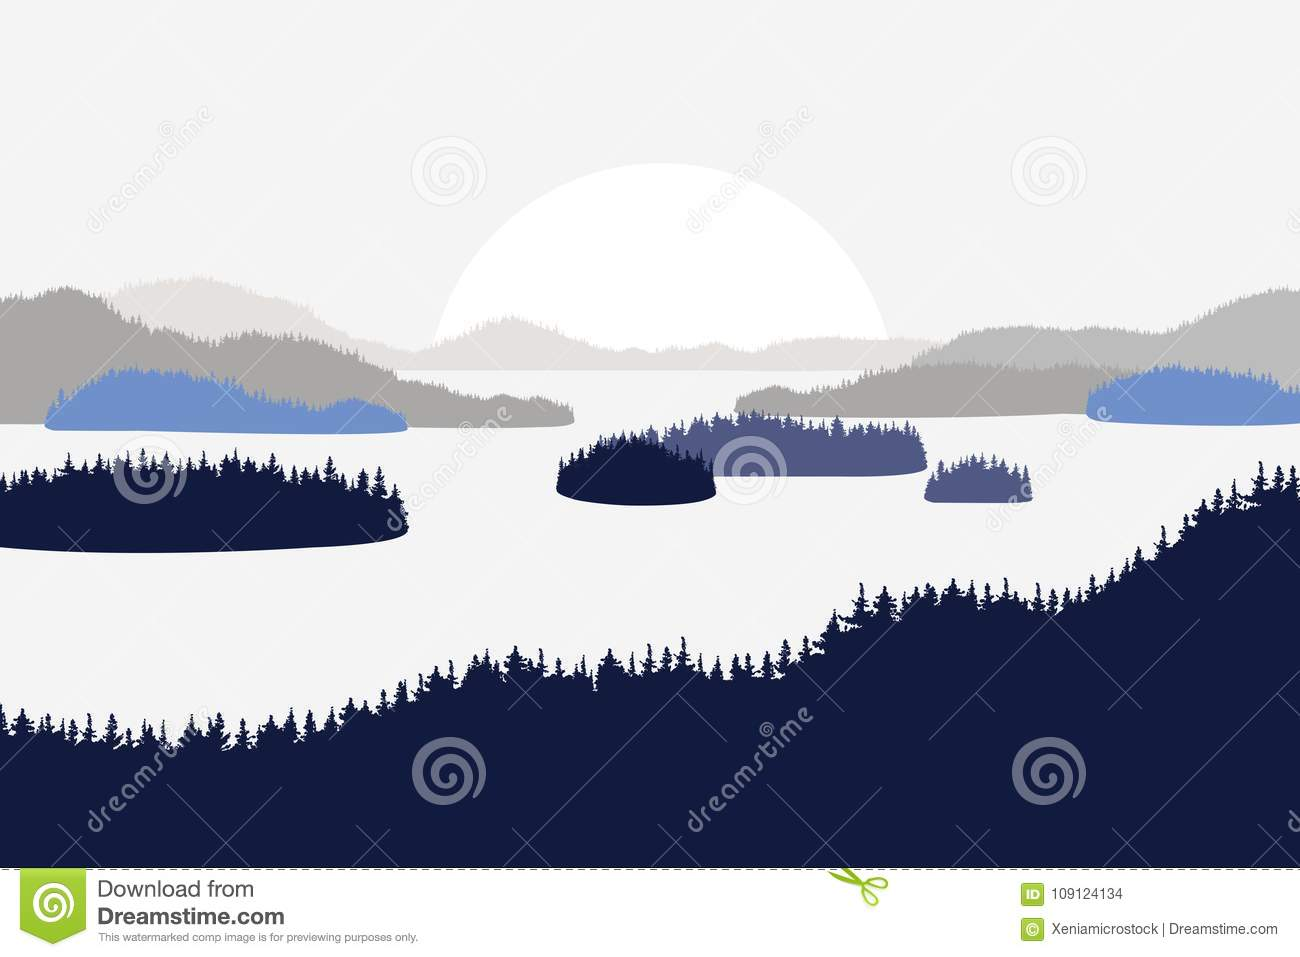 Landscape with hills mountains lakes rivers. Firs in the foreground. Flat style.